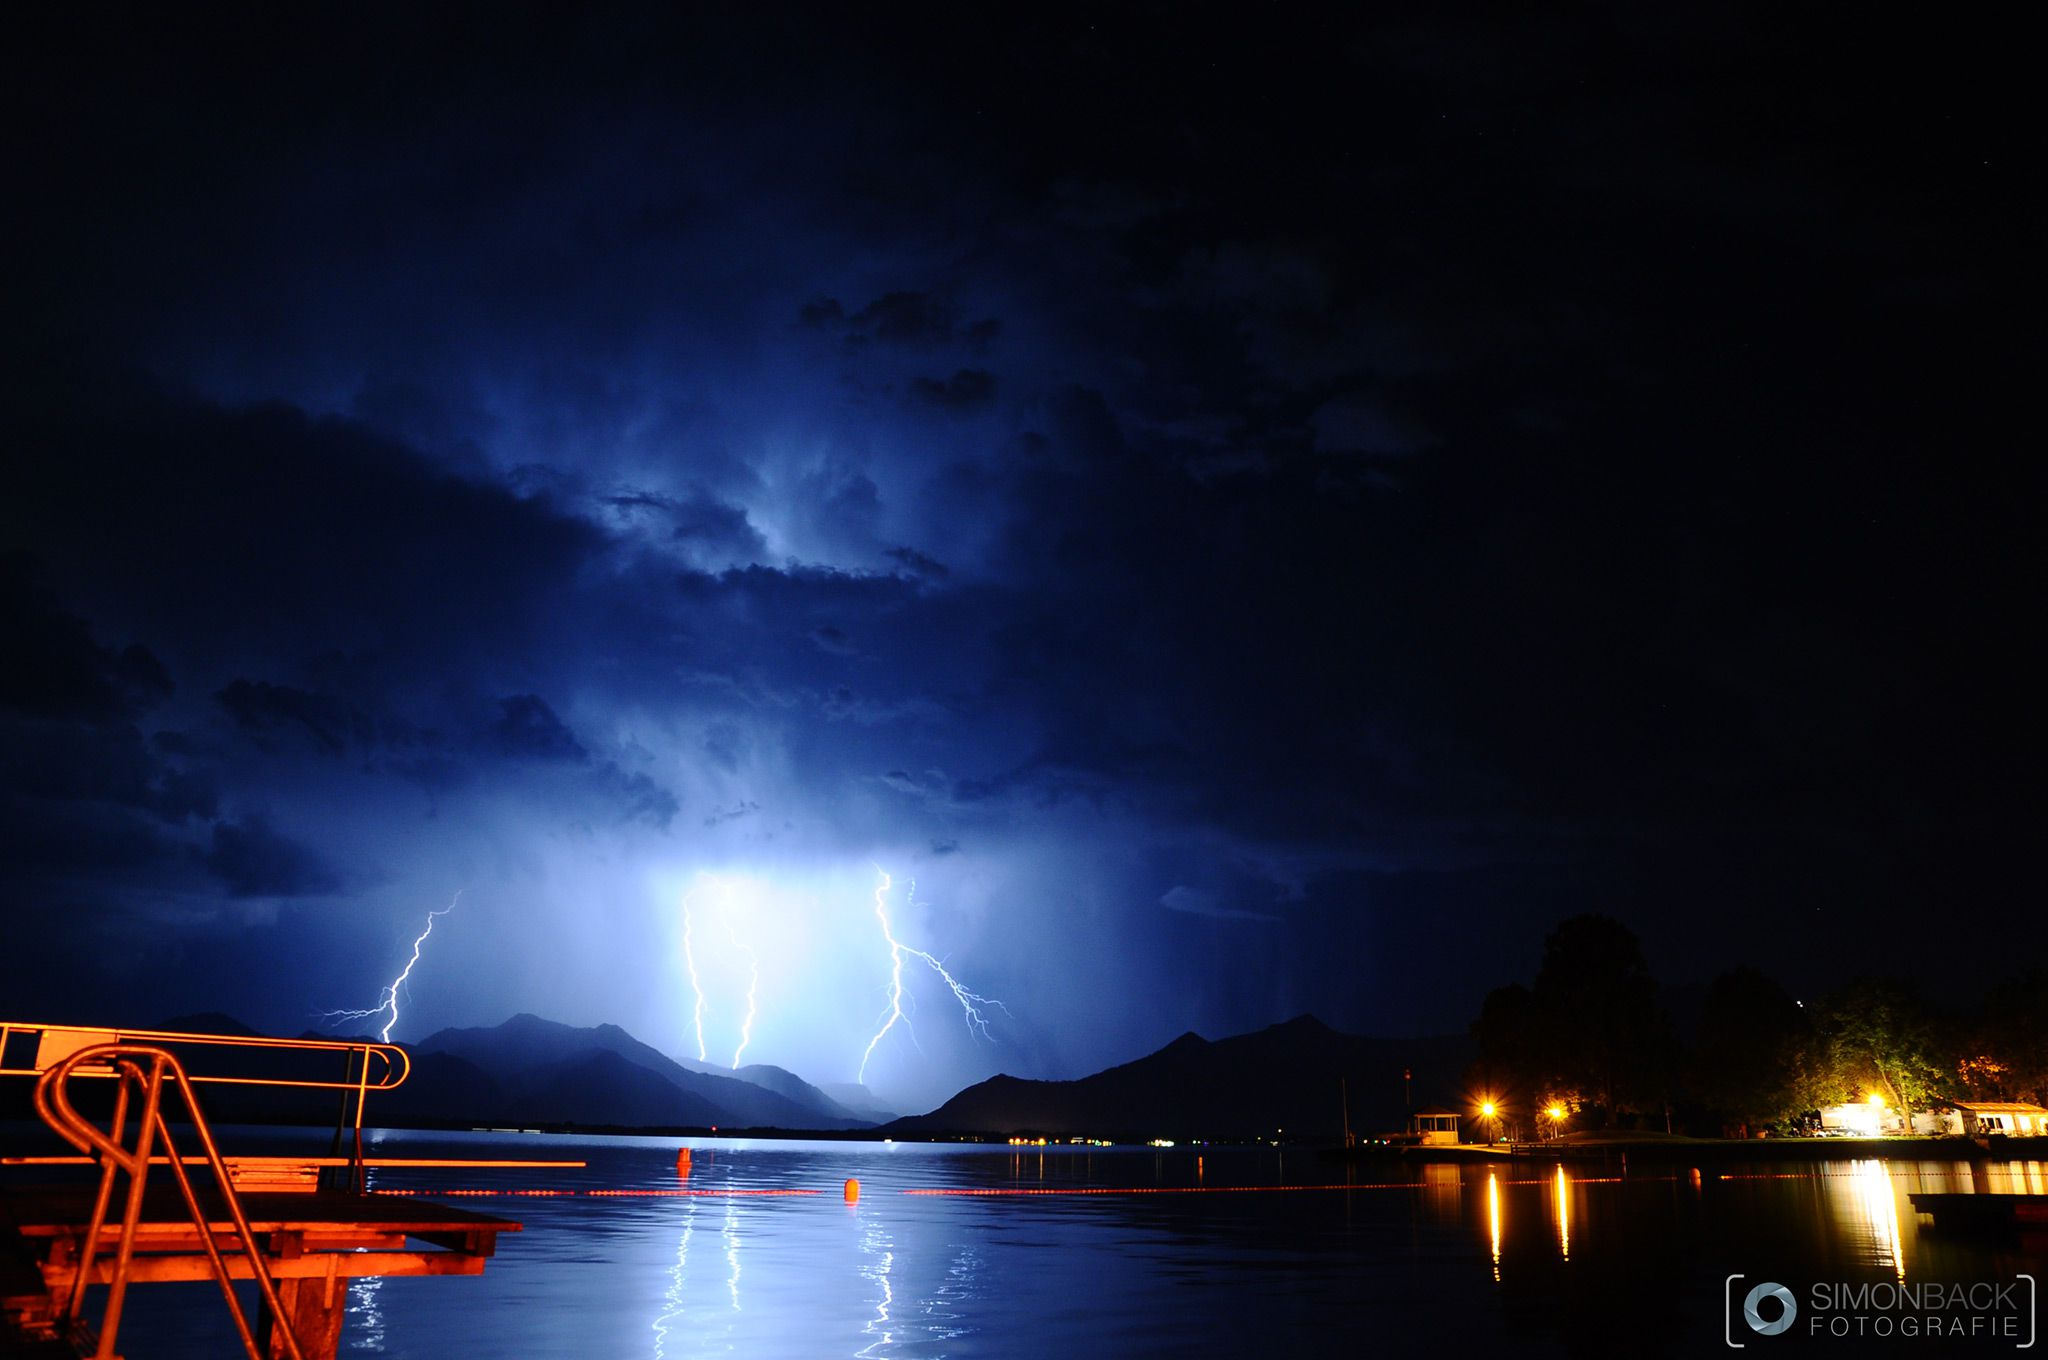 Gewitter am Chiemsee in Prien am Chiemsee SimonBack.de